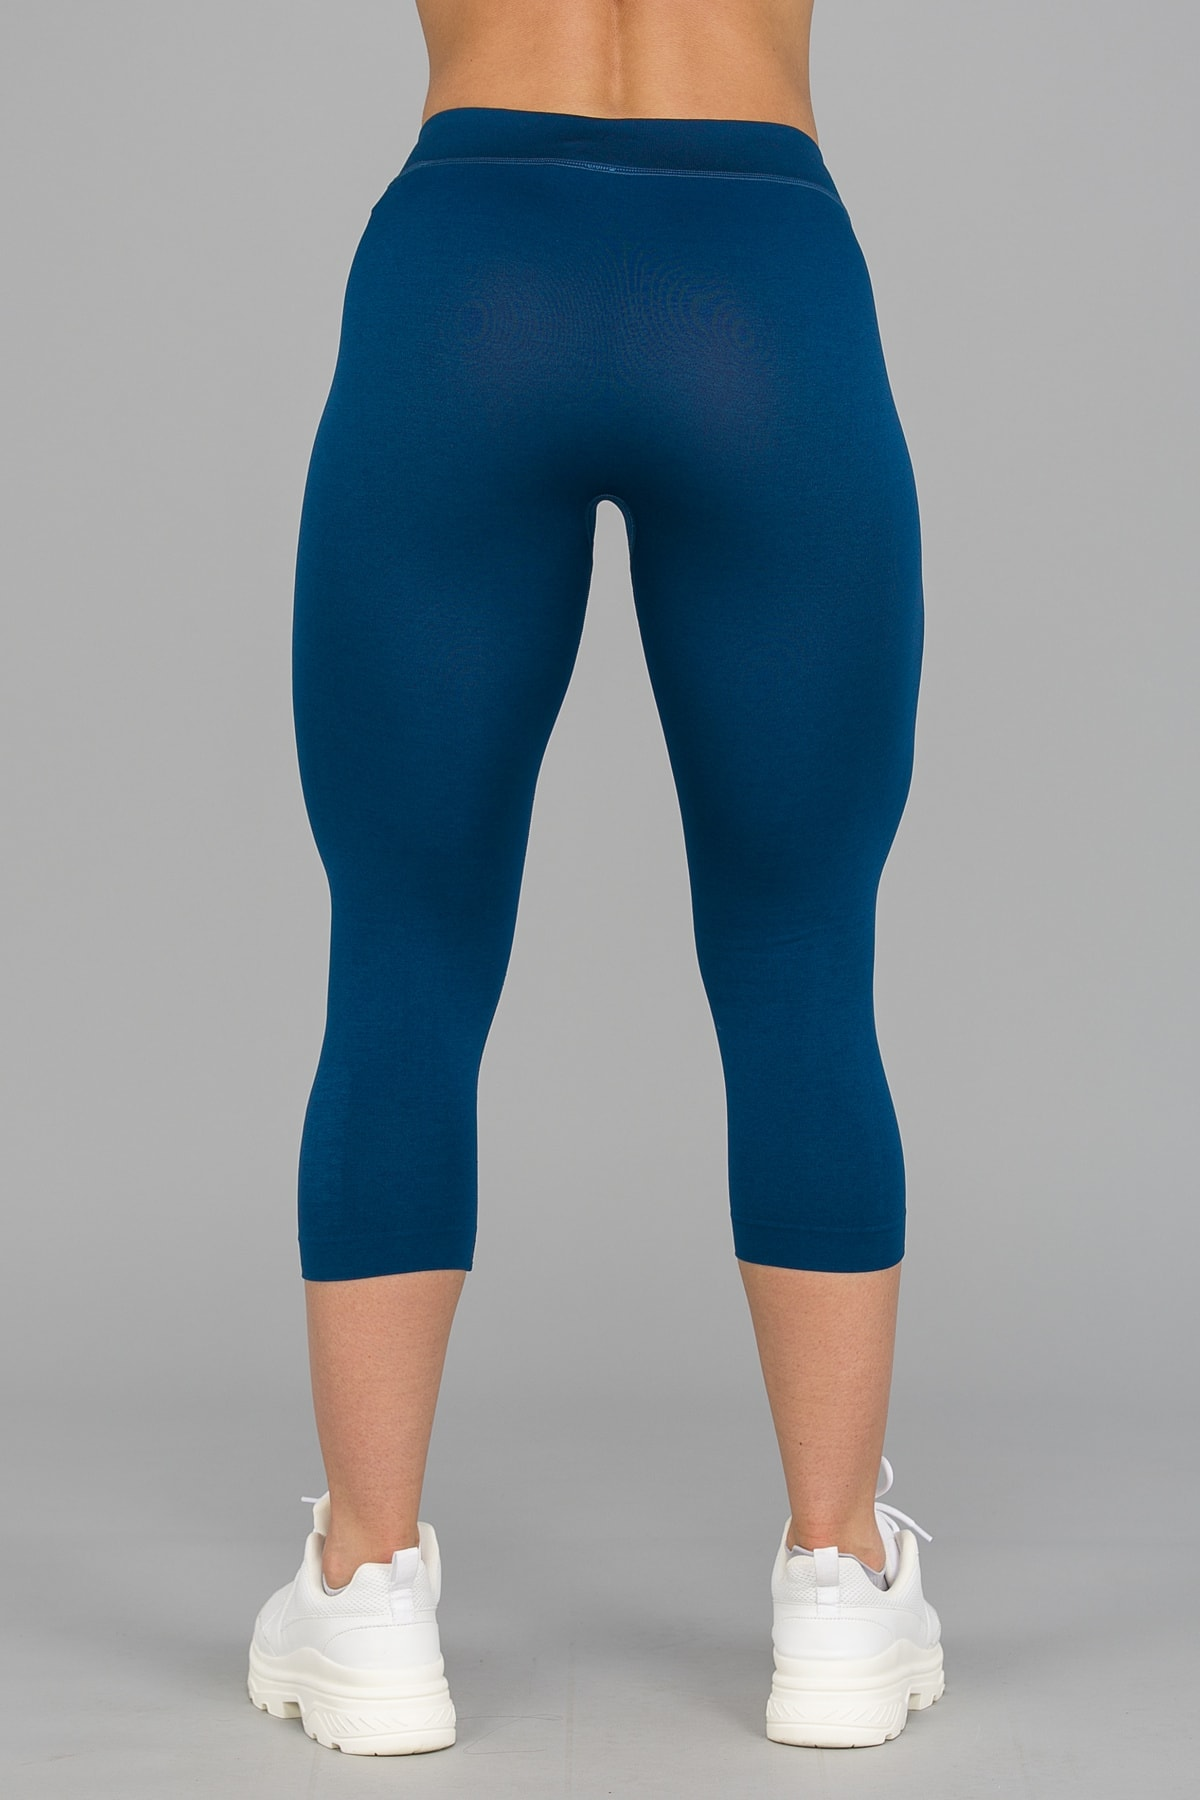 Jerf Captiva Tights (3:4) Navy12